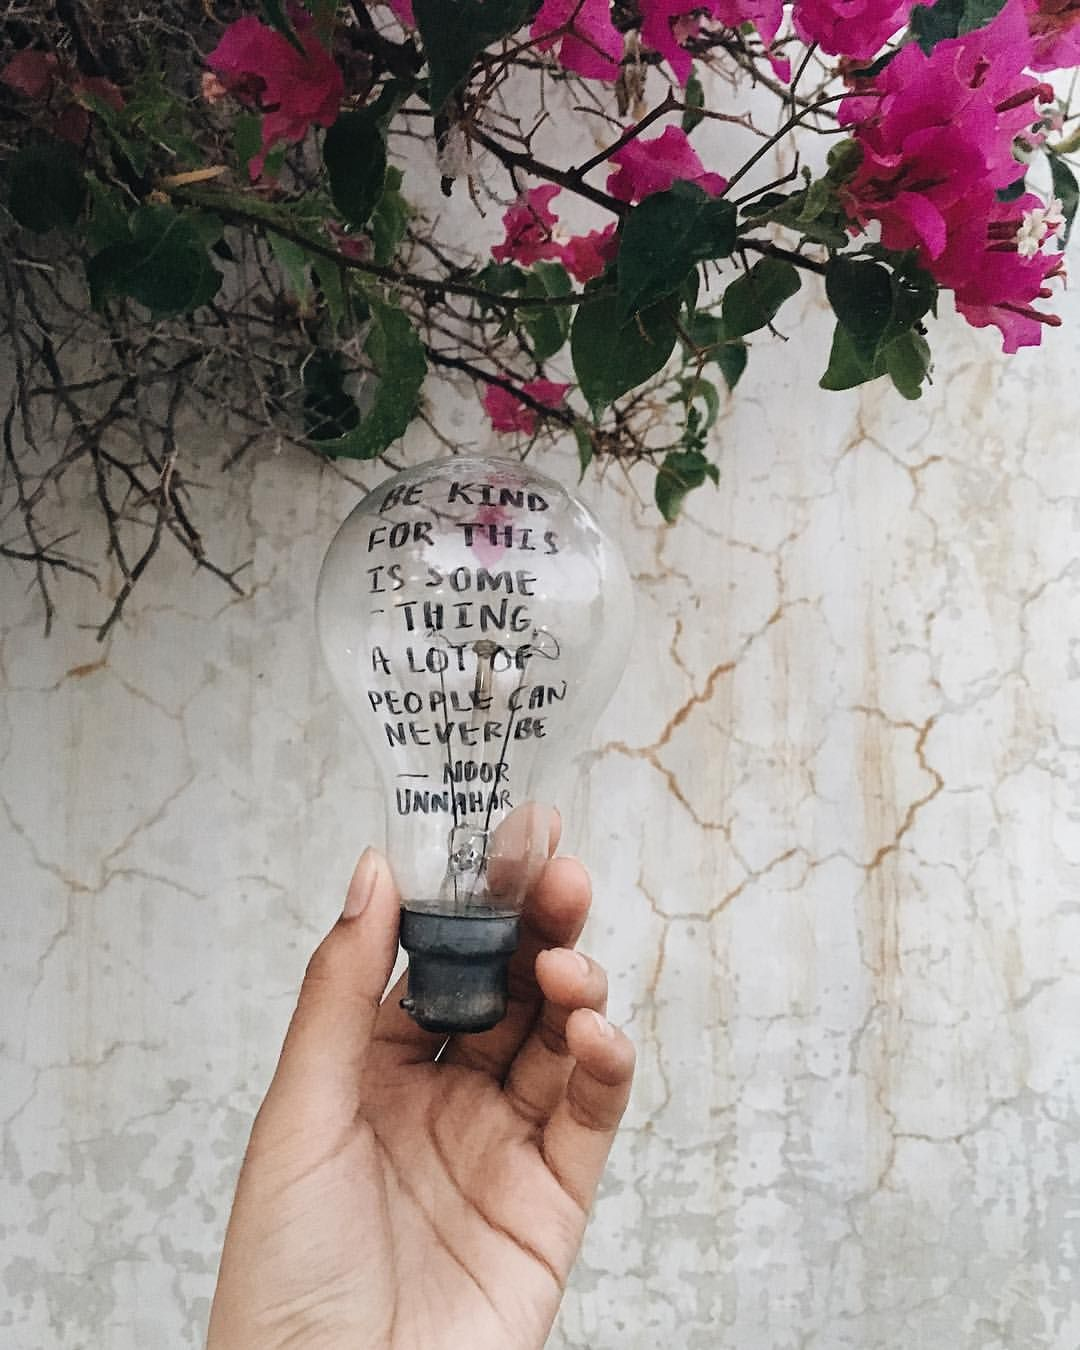 Kindness An Old Poetry Piece On An Even Older Bulb By Noor